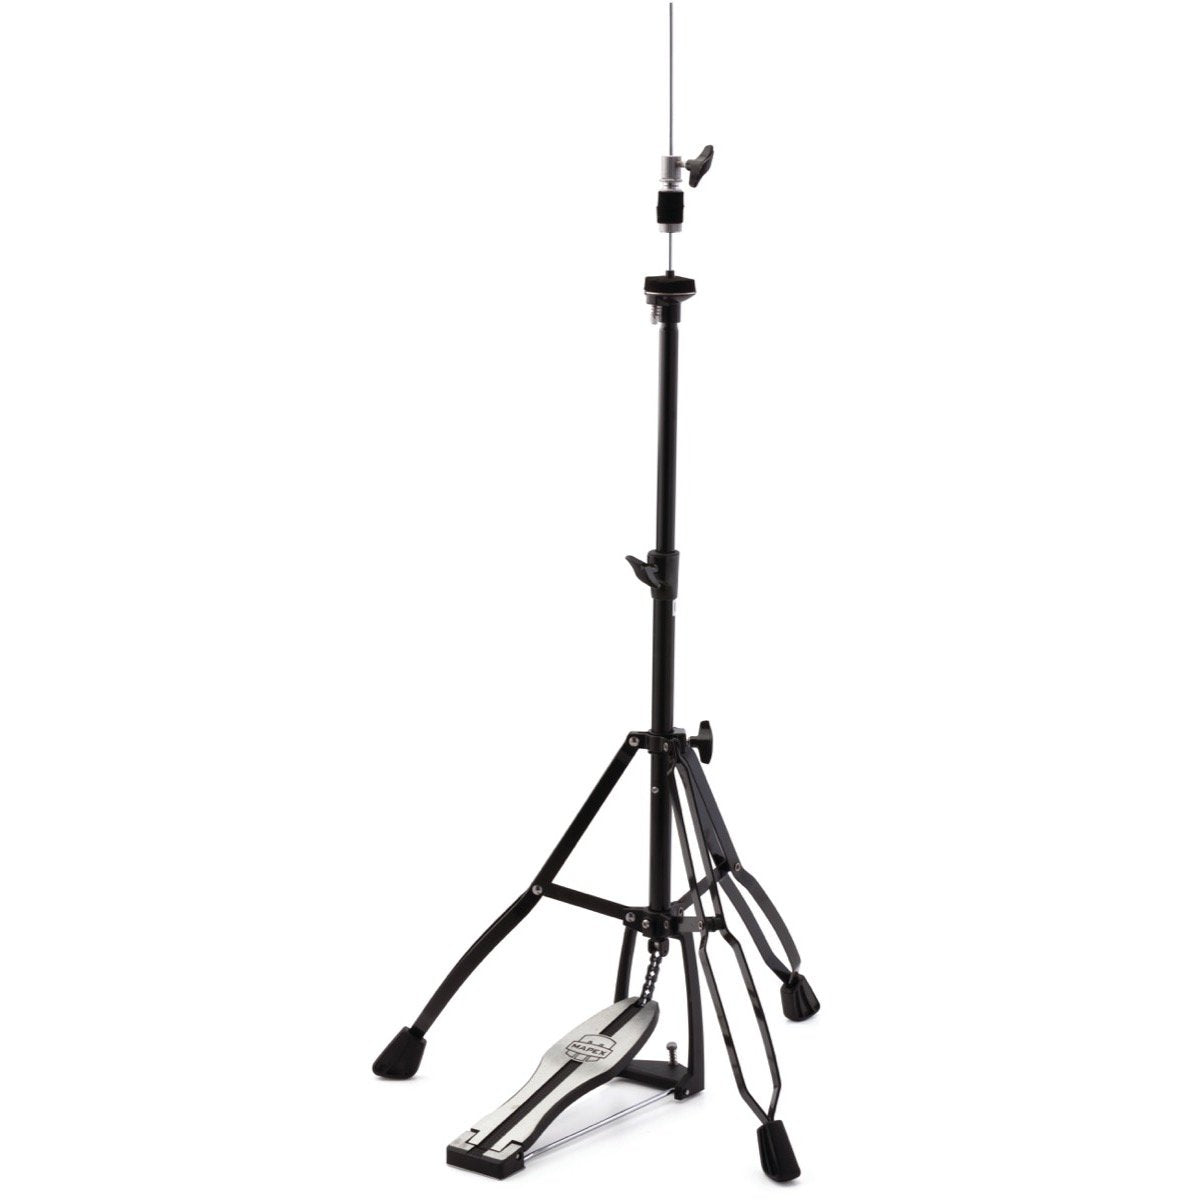 Mapex H400EB Double Braced Hi-Hat Stand, Black